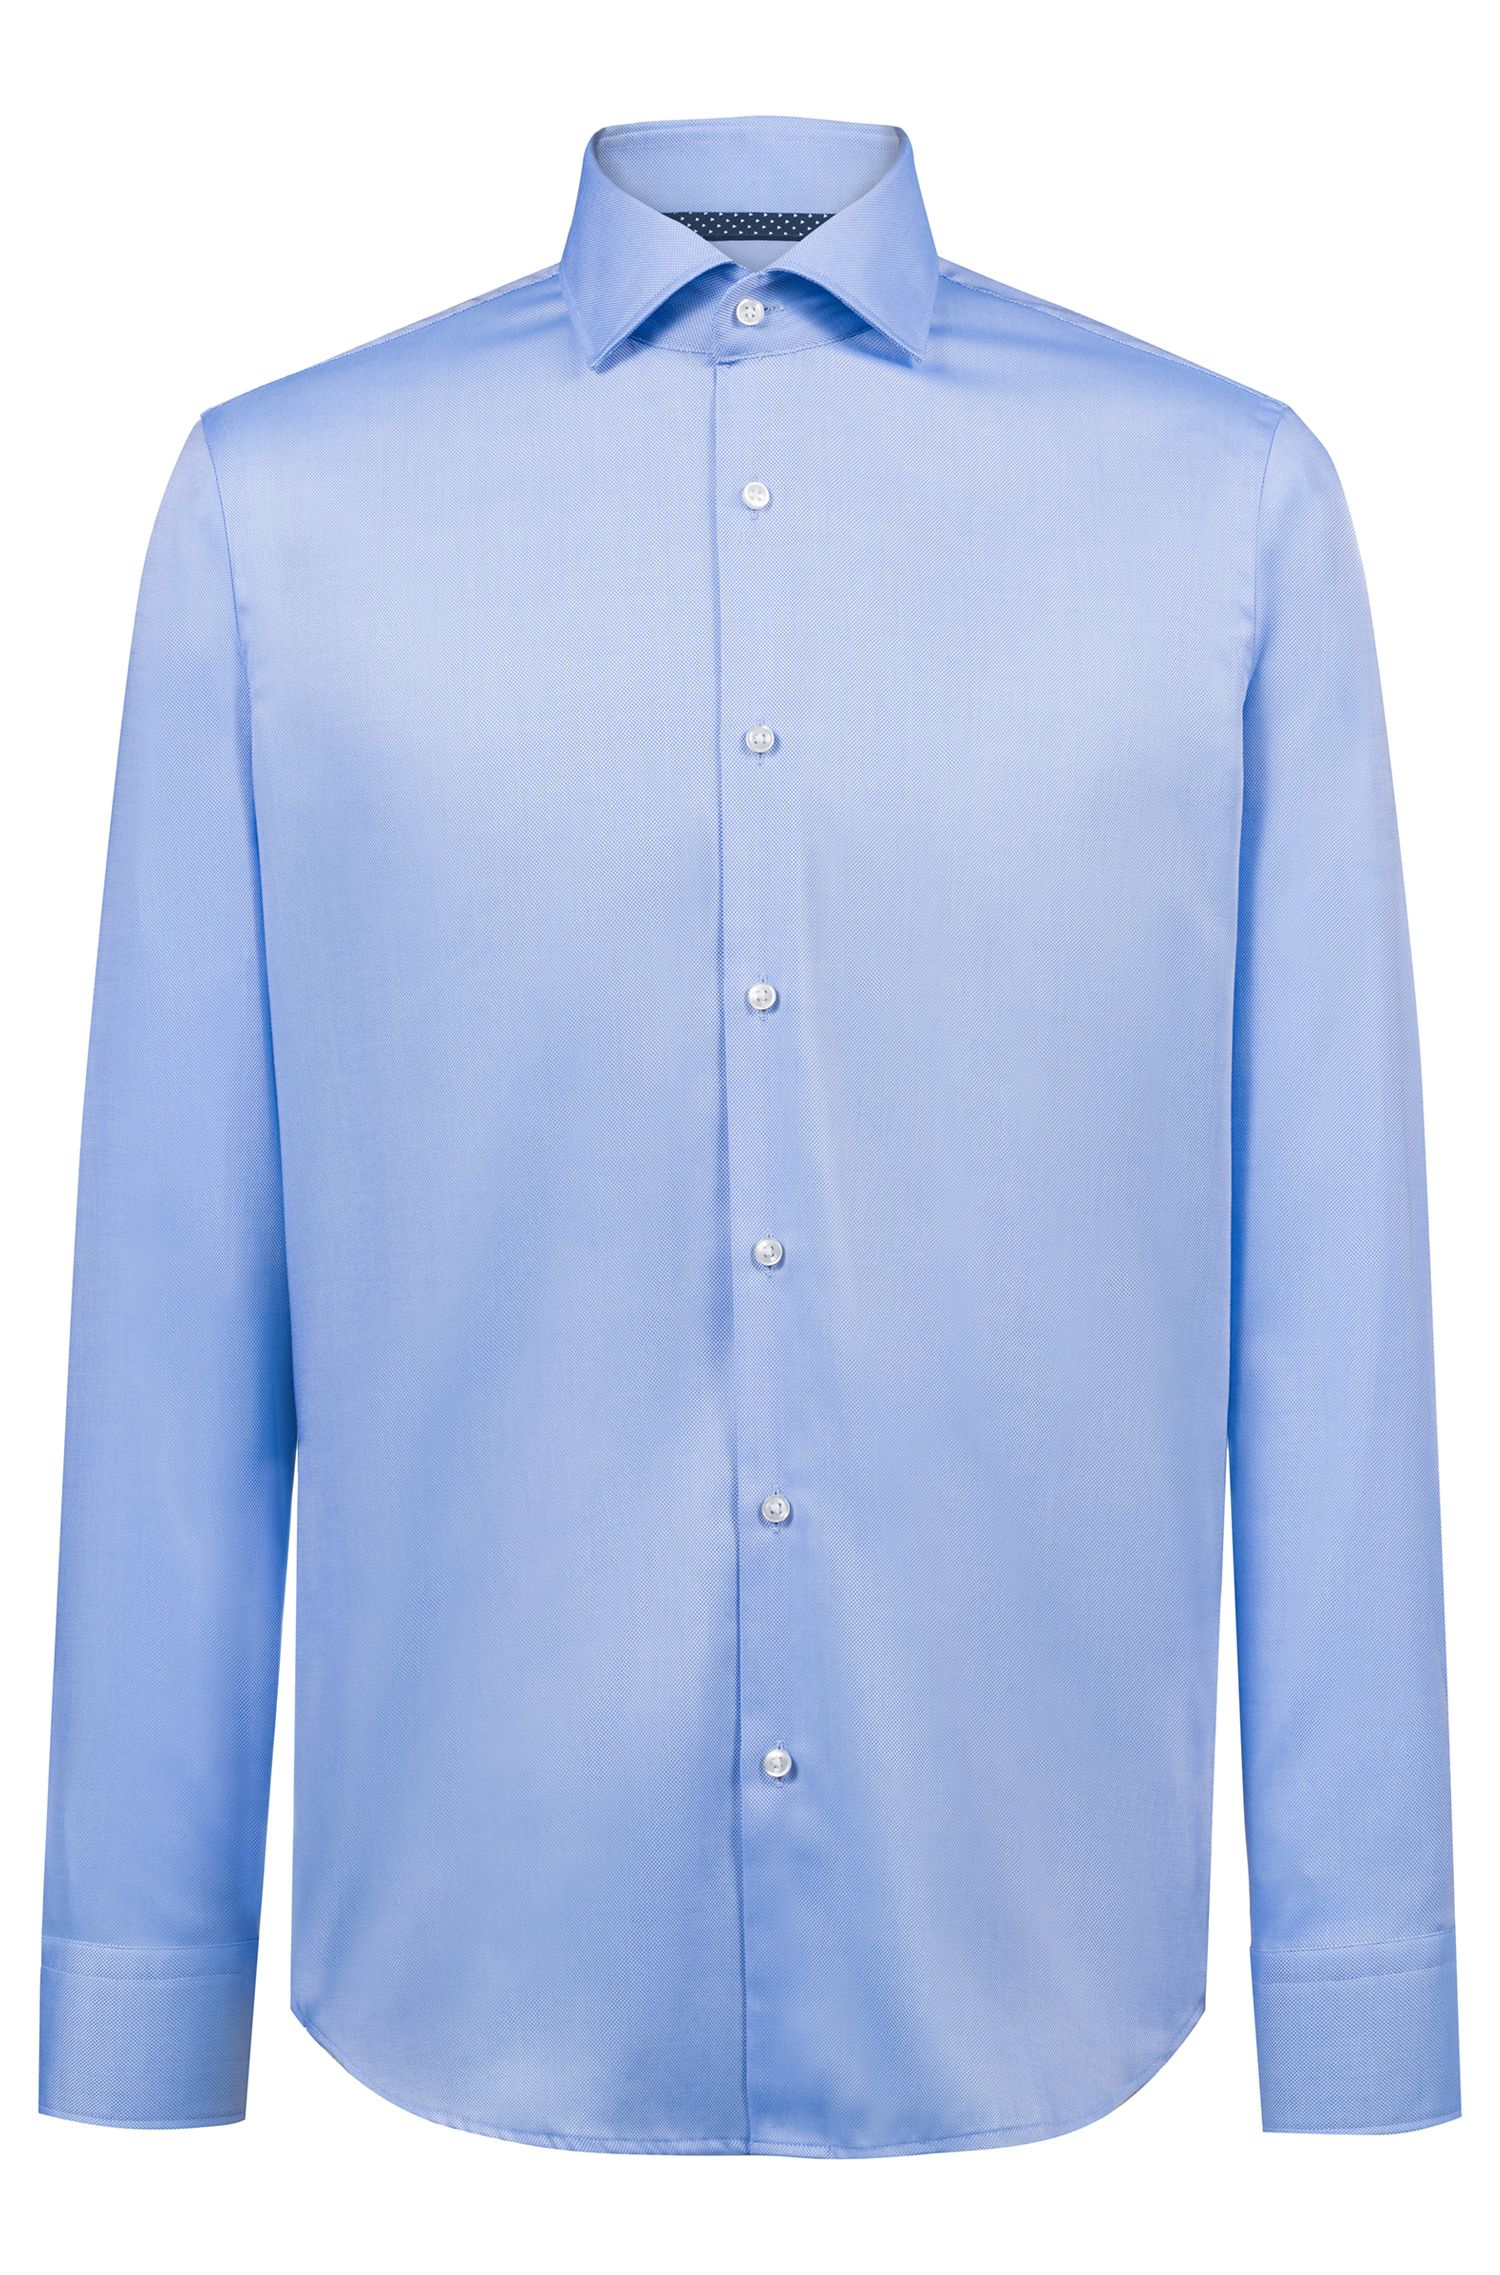 Regular-fit shirt in easy-iron Oxford cotton, Light Blue